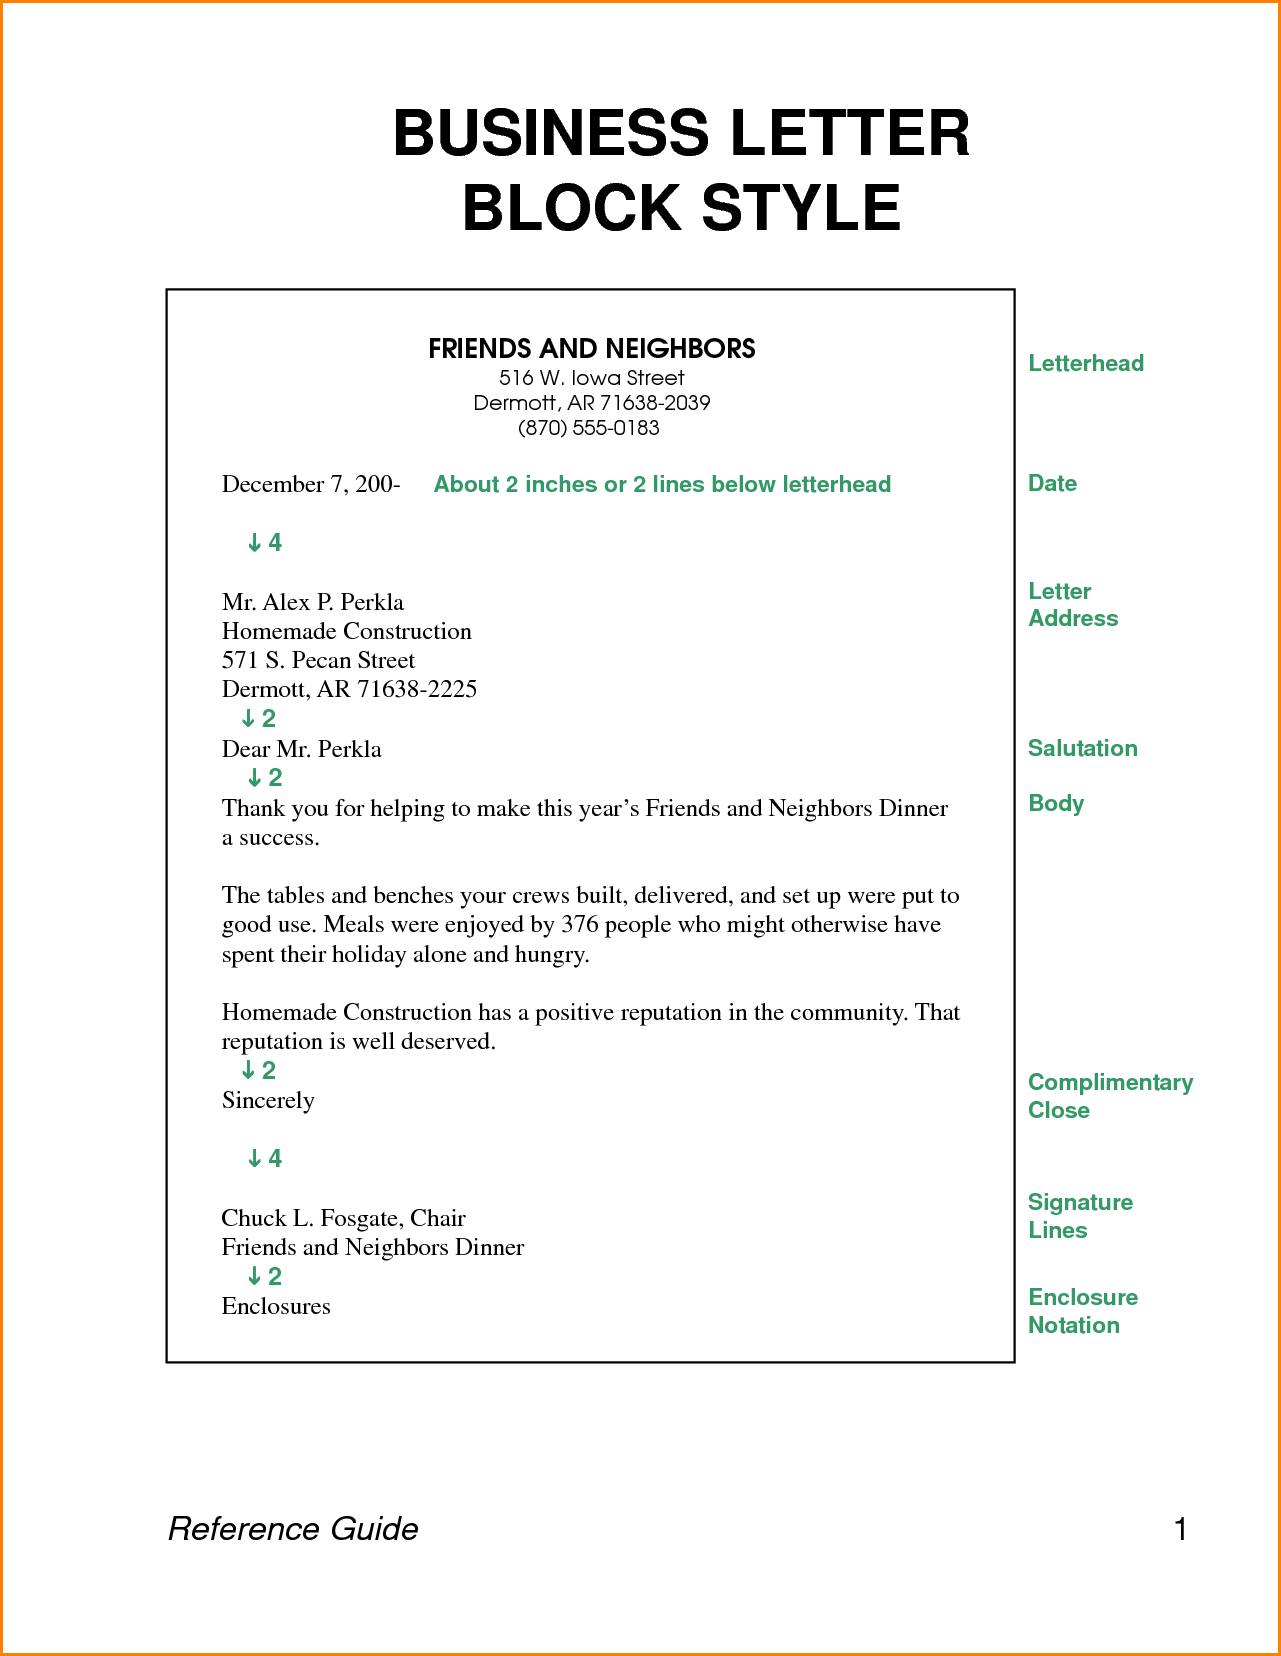 Business letter block style letters format download free documents business letter block style letters format download free documents pdf word altavistaventures Image collections